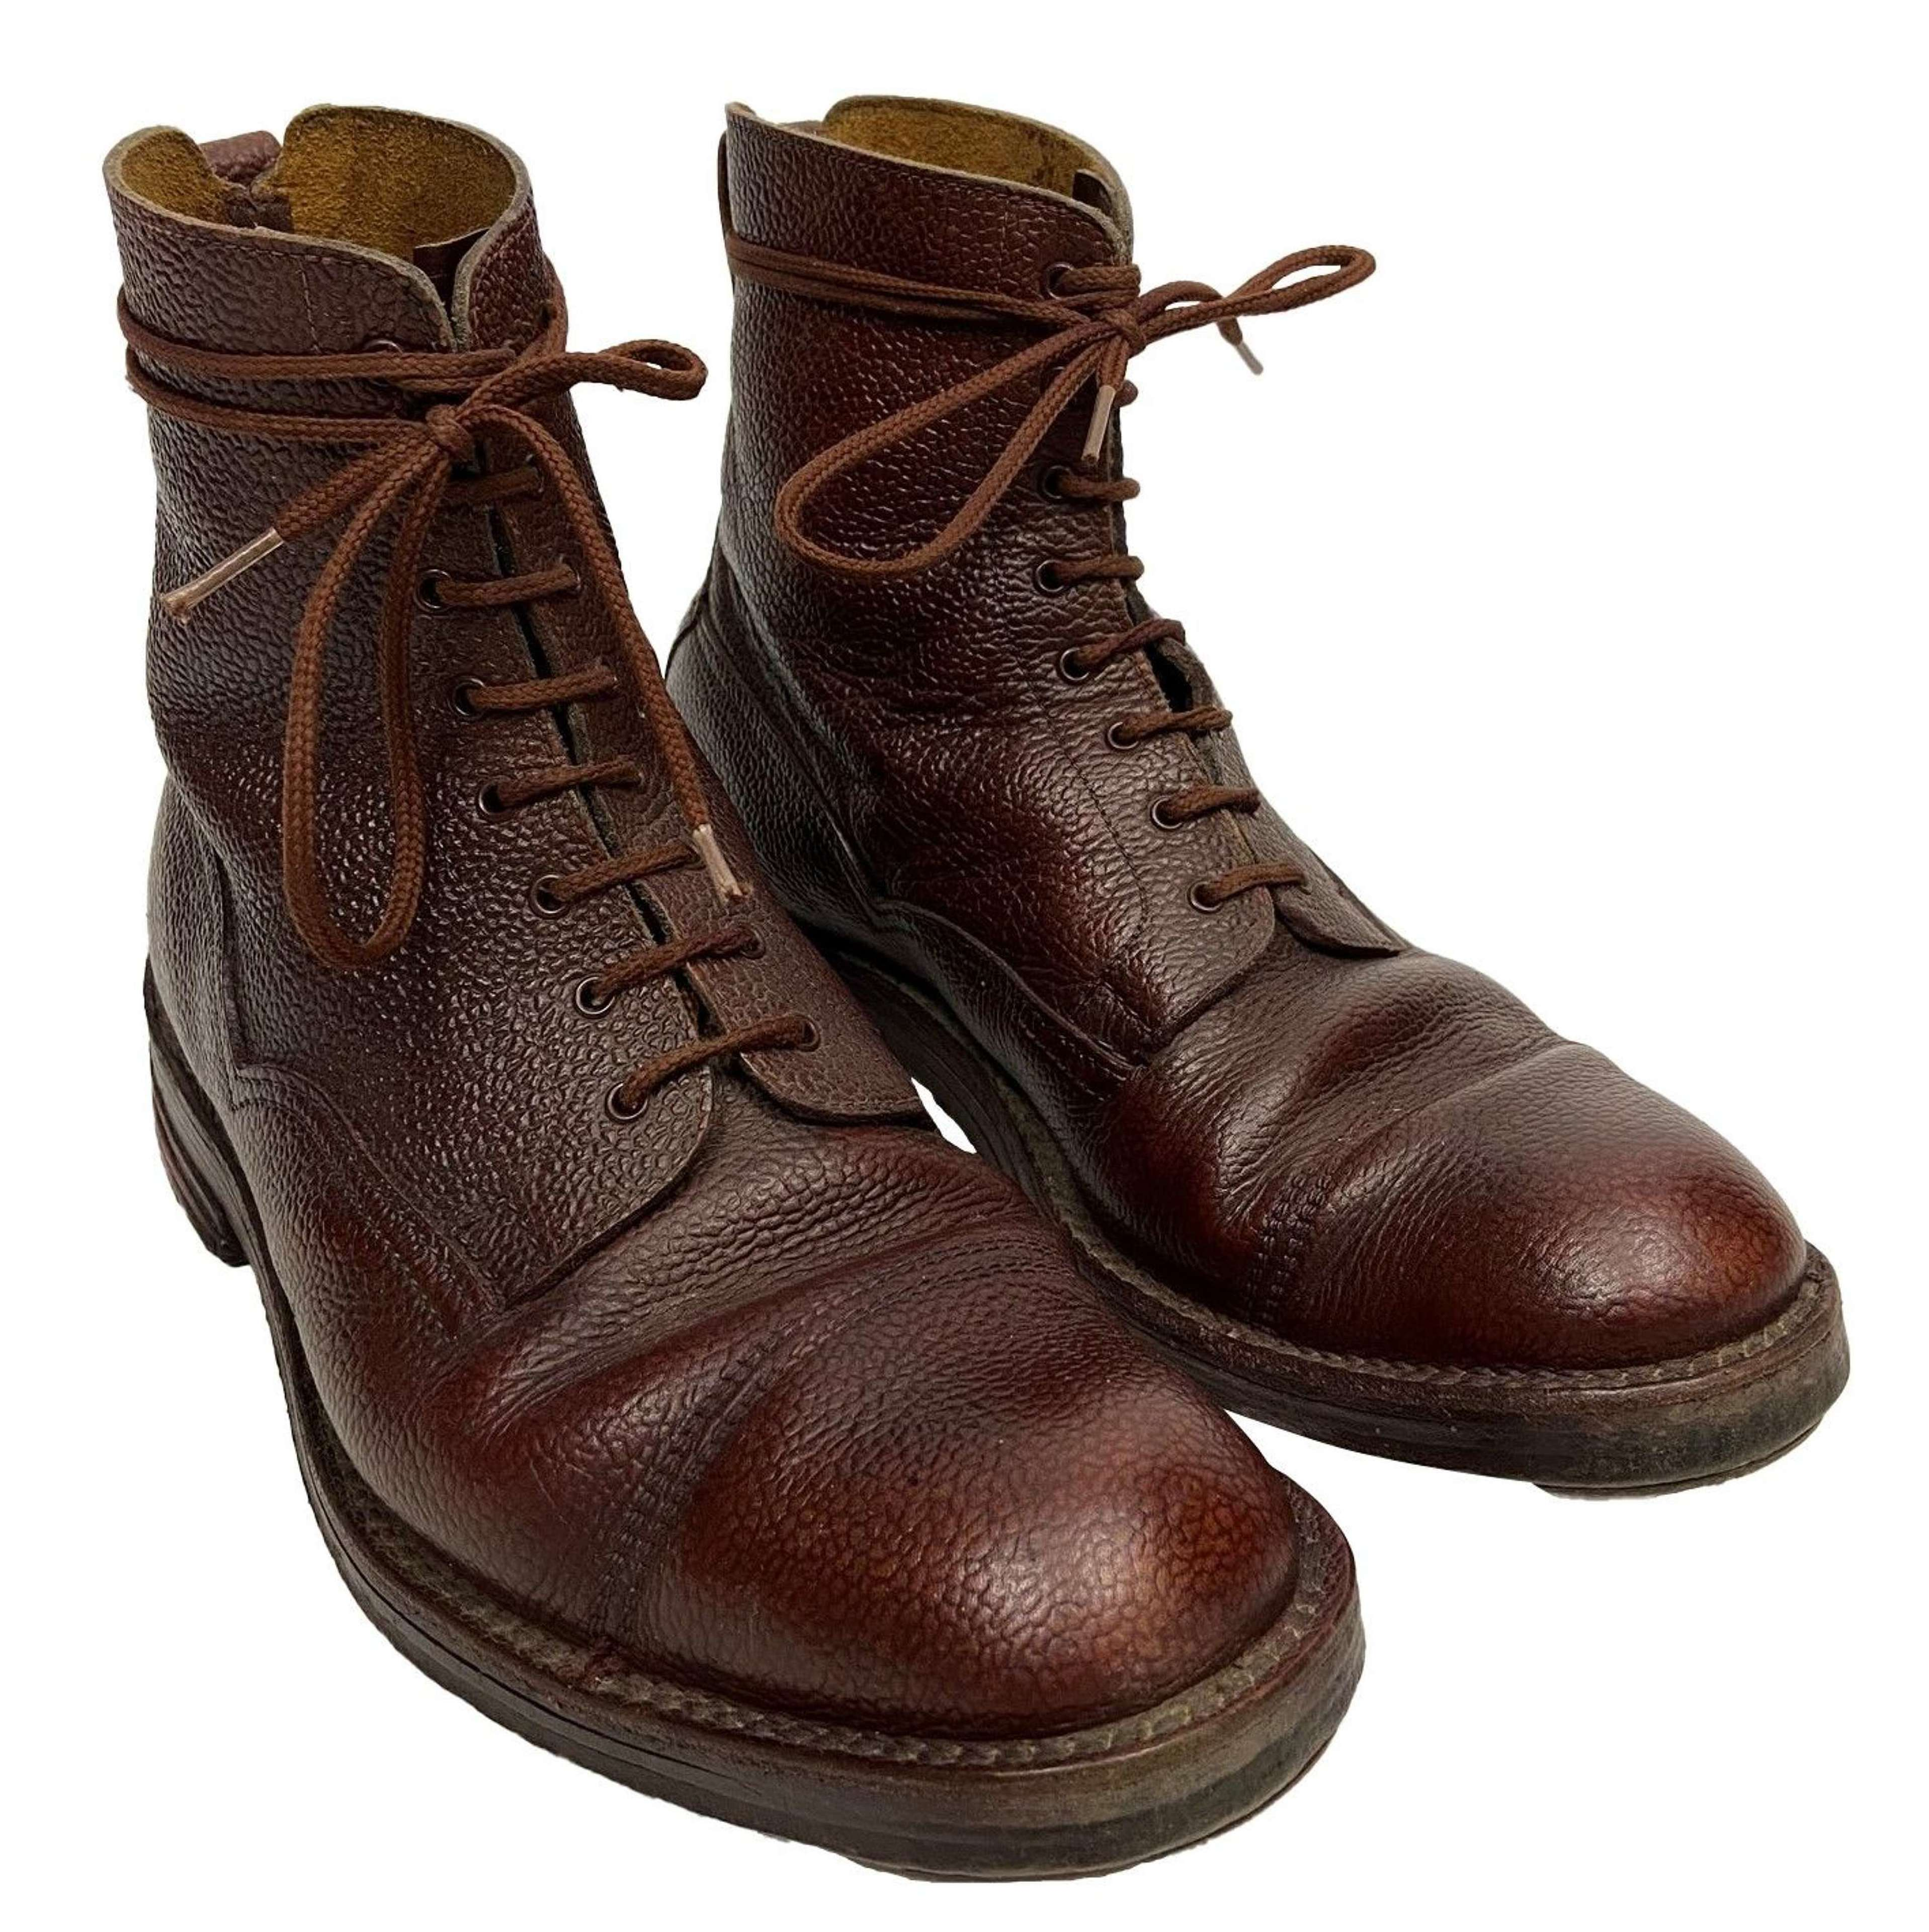 Original British Brown Leather Ankle Boots - Size 8